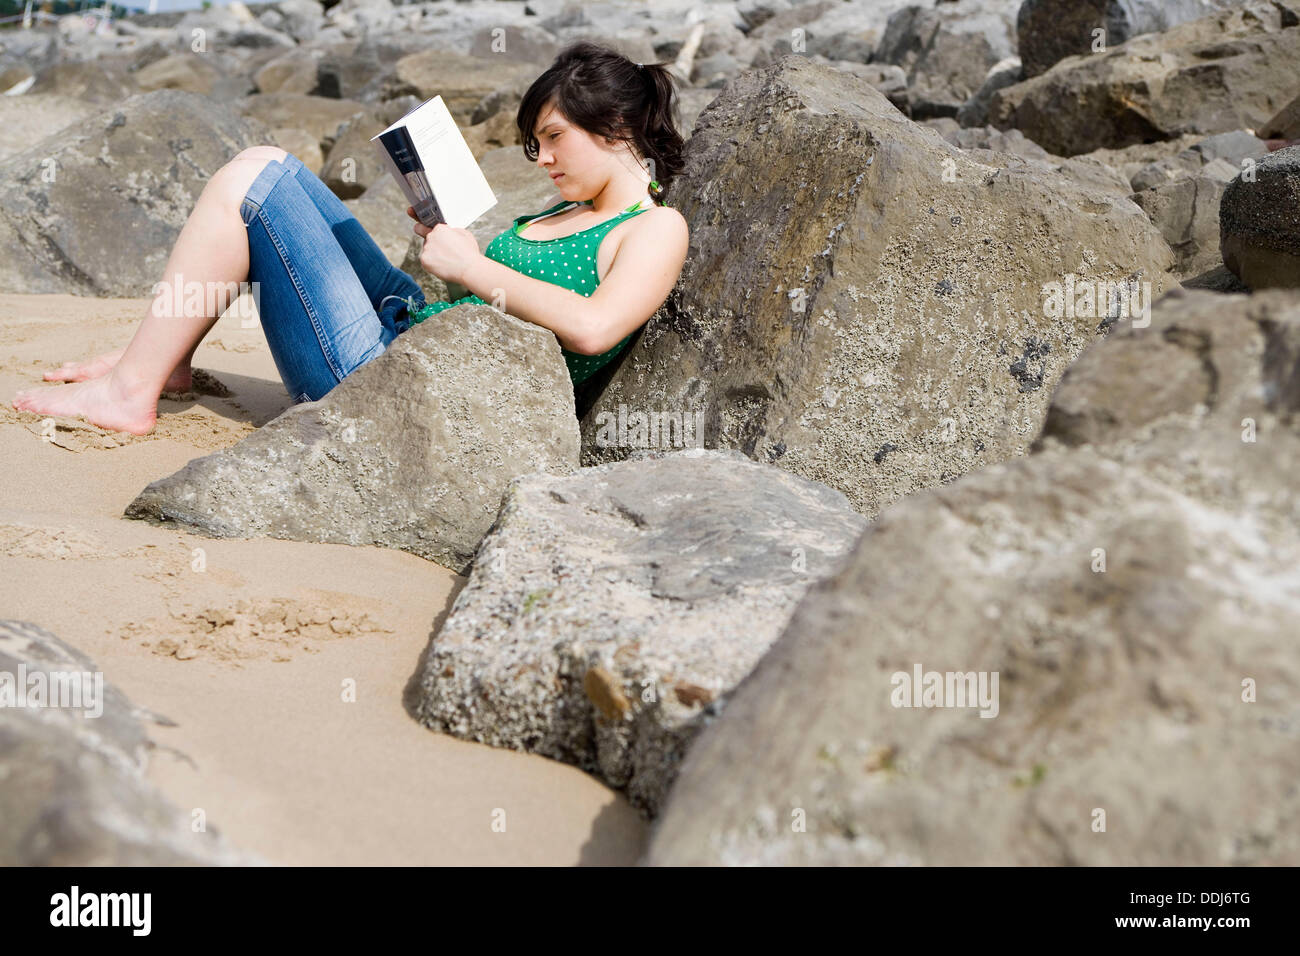 Seventeen year old girl reading at beach. - Stock Image